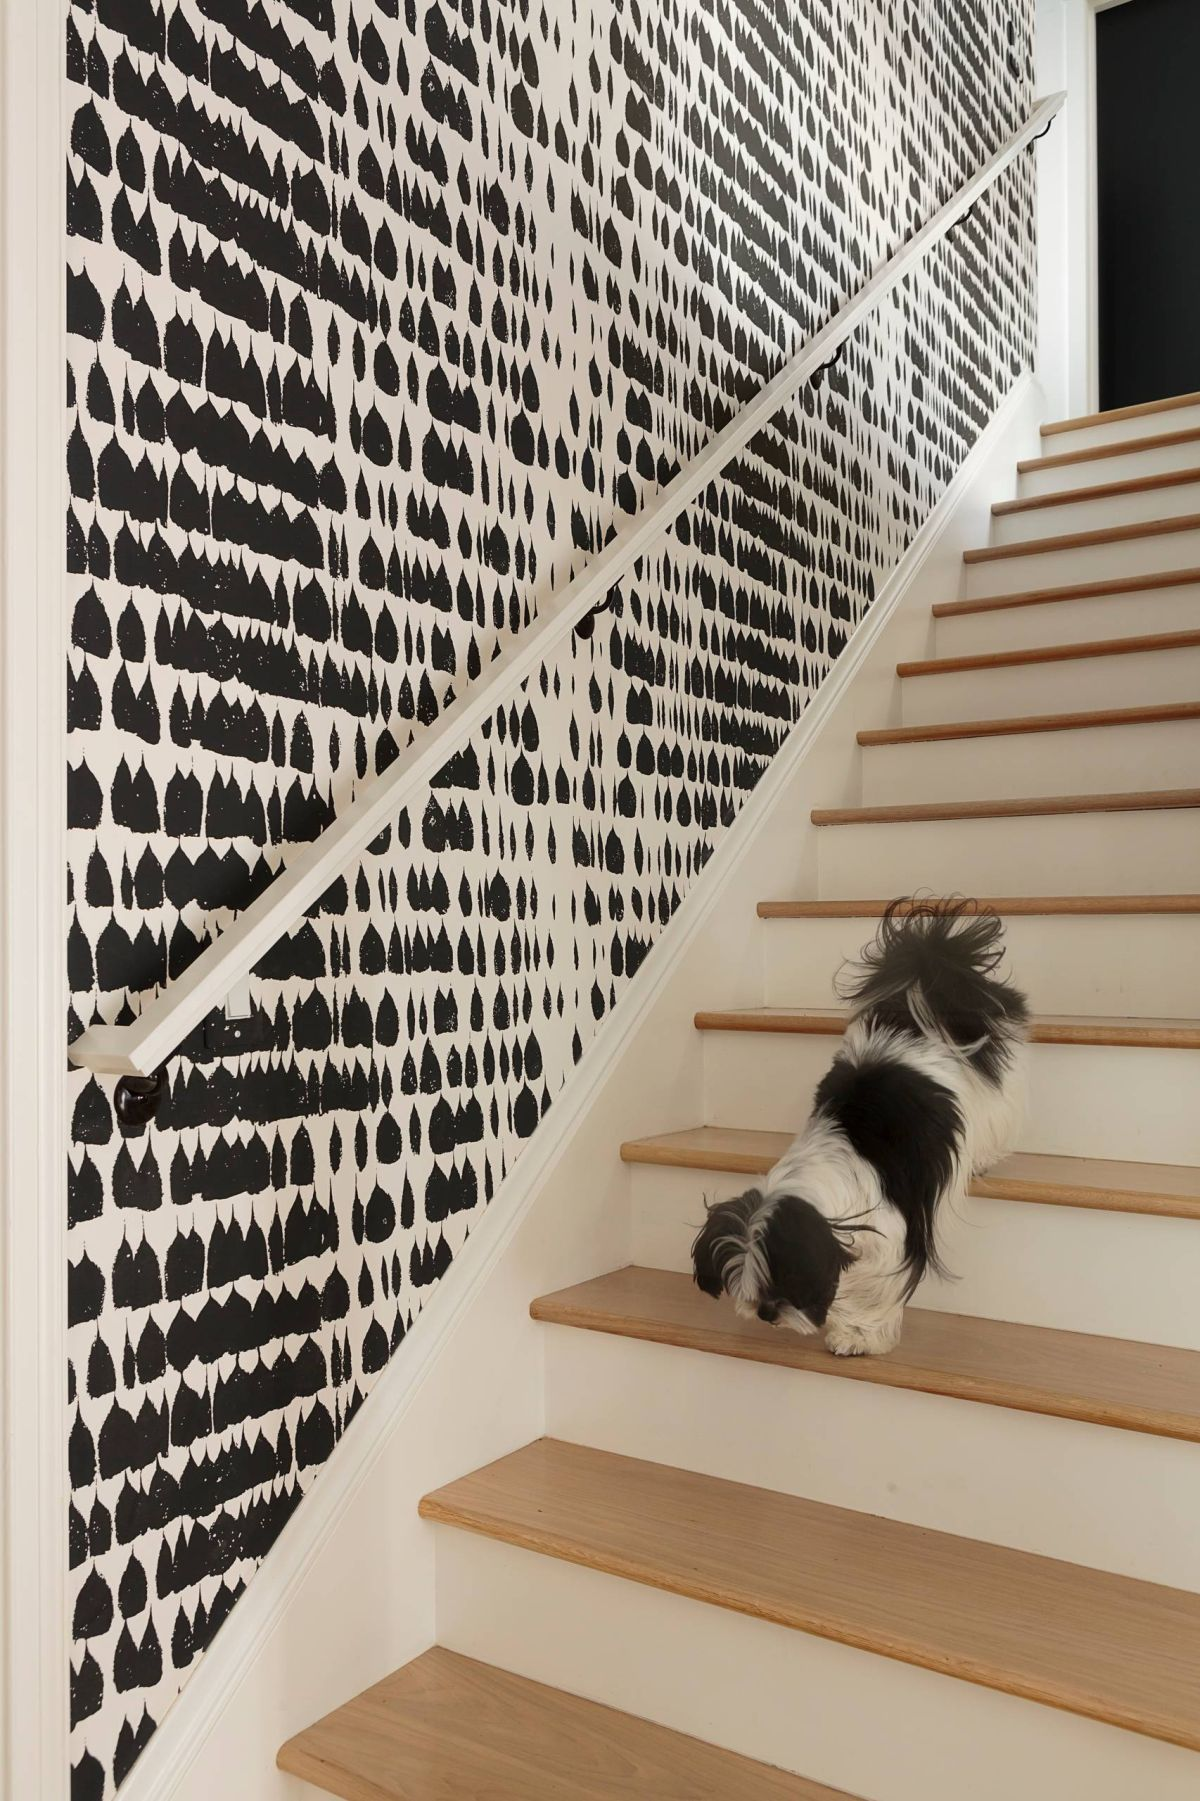 Modern contemporay staircase with black and white wallpaper wall